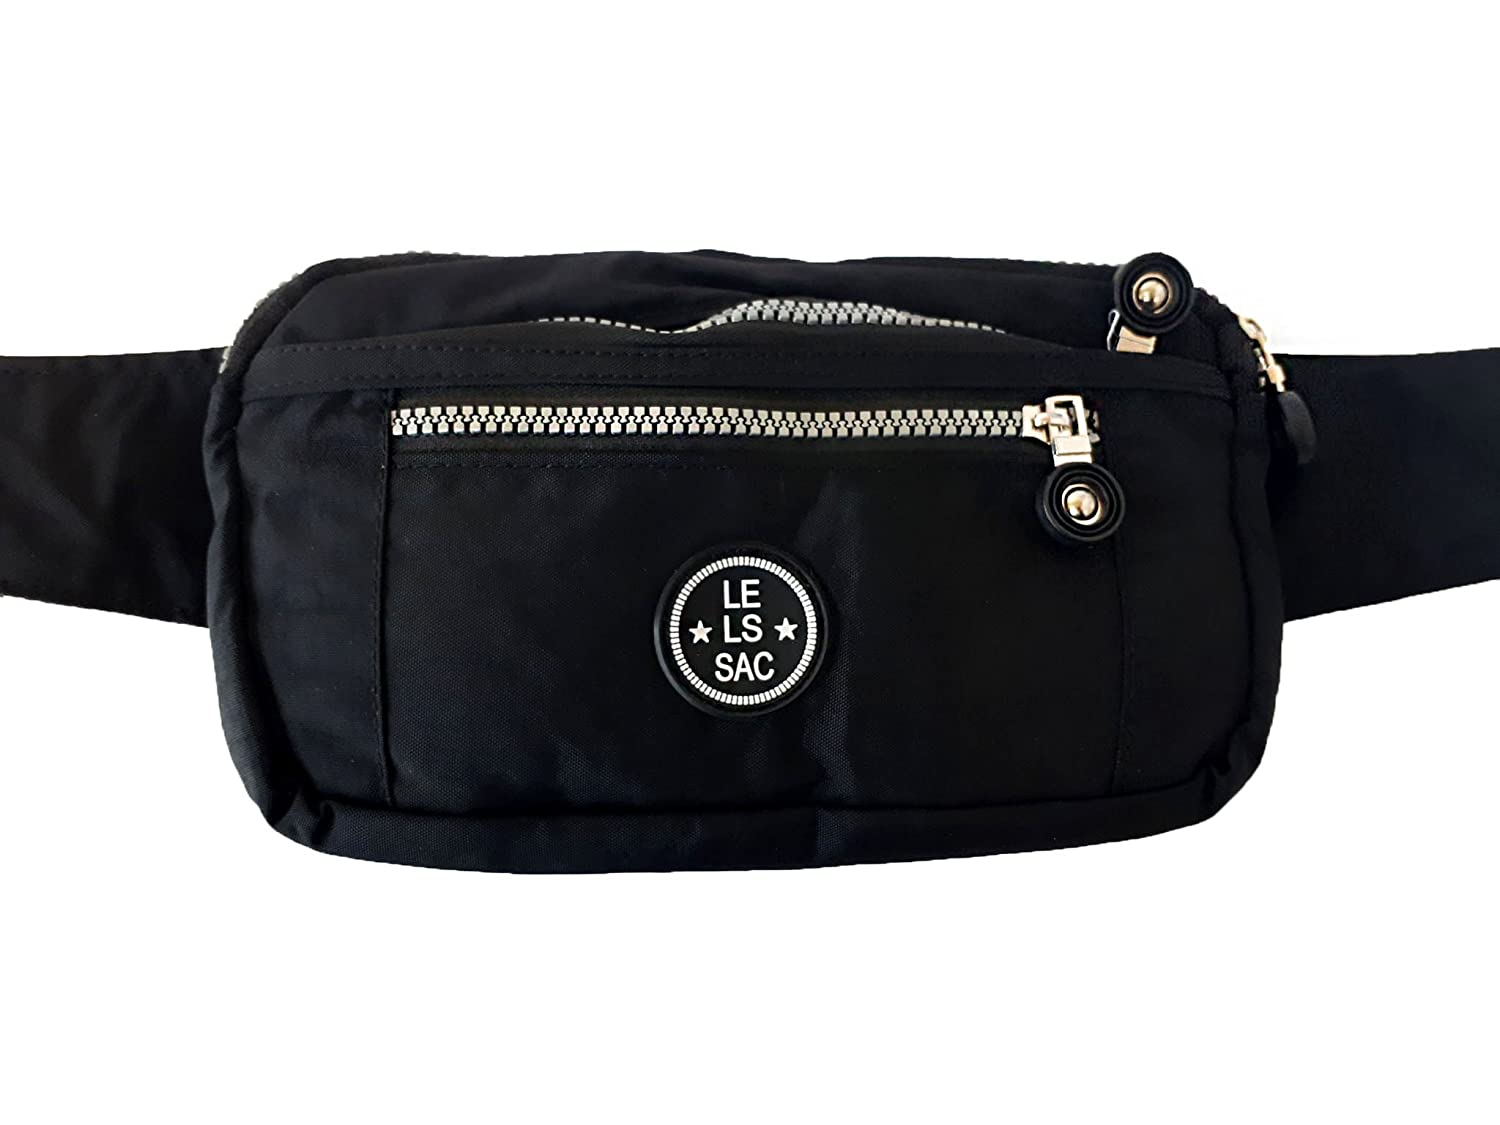 Le Sac Fanny Pack Waist Money Belt and Pouch for Travel Outdoors Sports Work with 4 Zippered Pockets in Black C6172 Blk